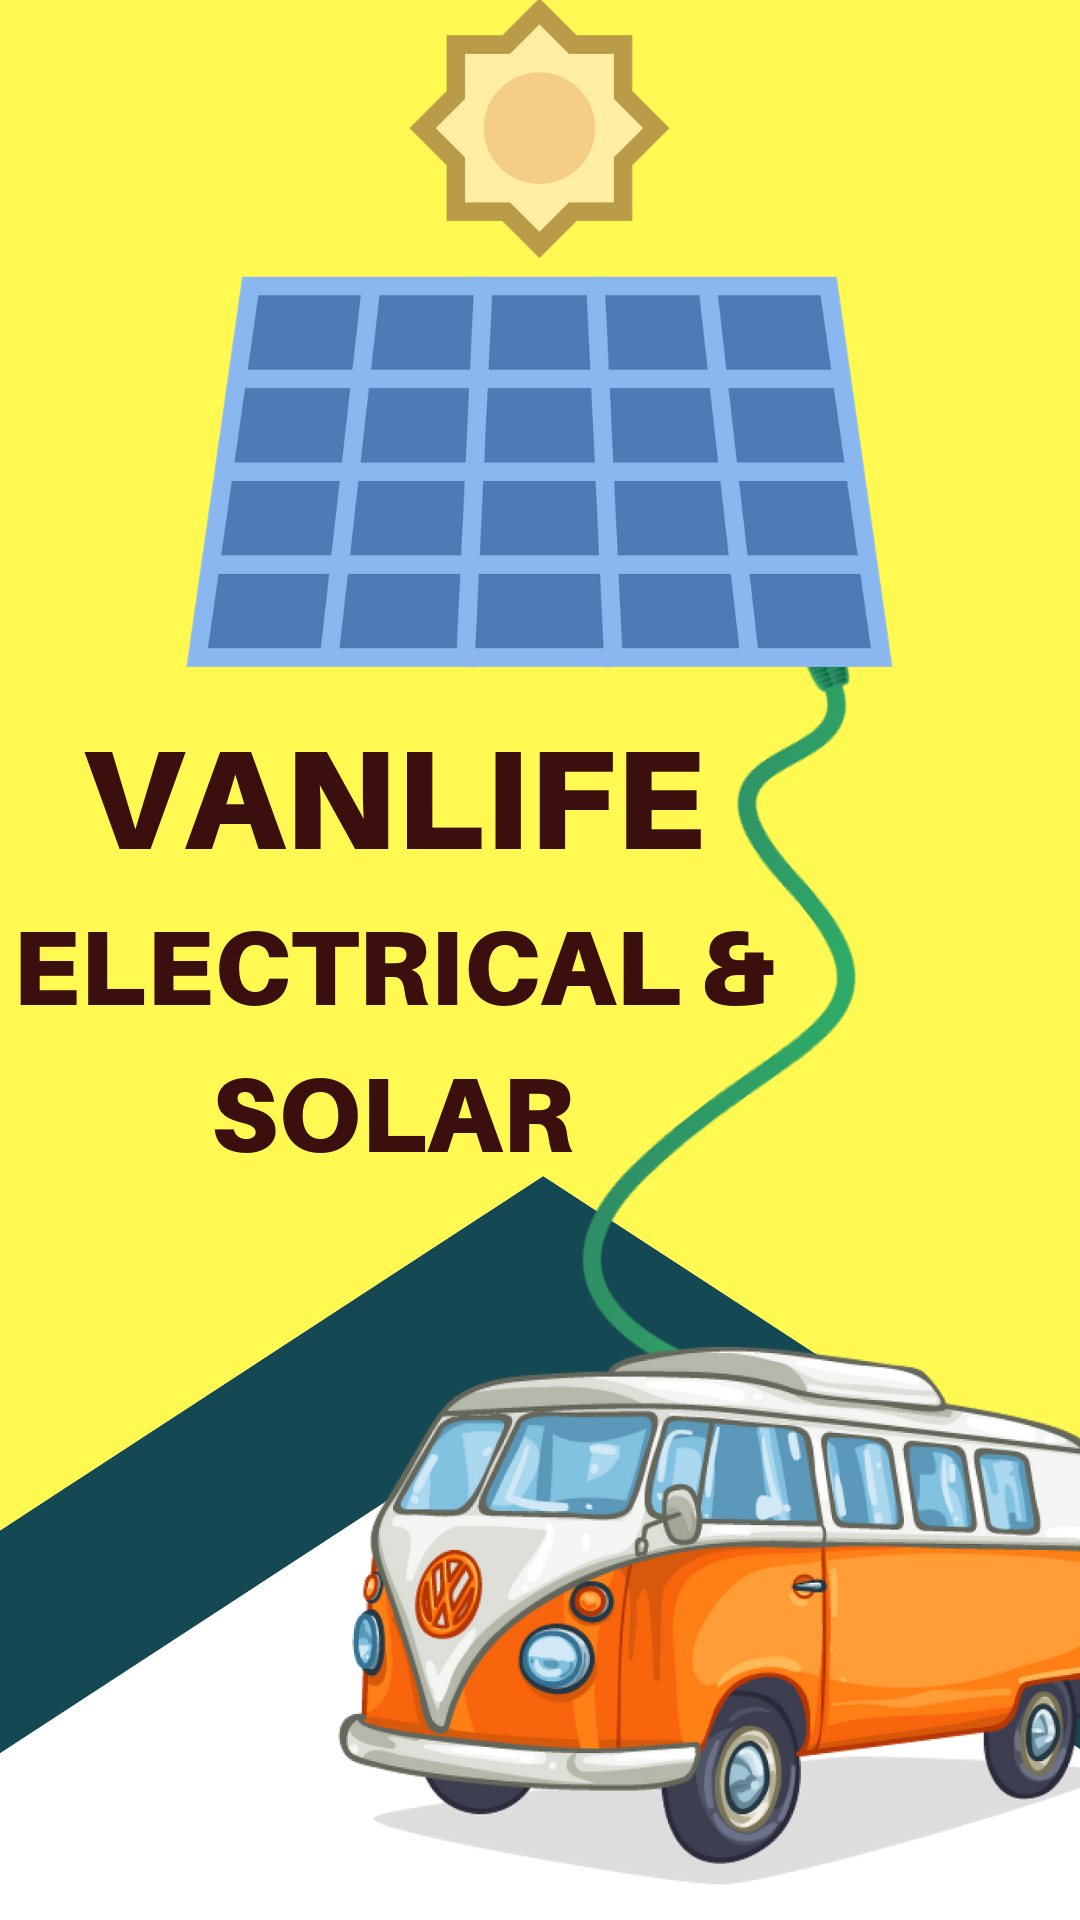 Photo of Camper van solar panels and electrical systems can often scare people away becau…